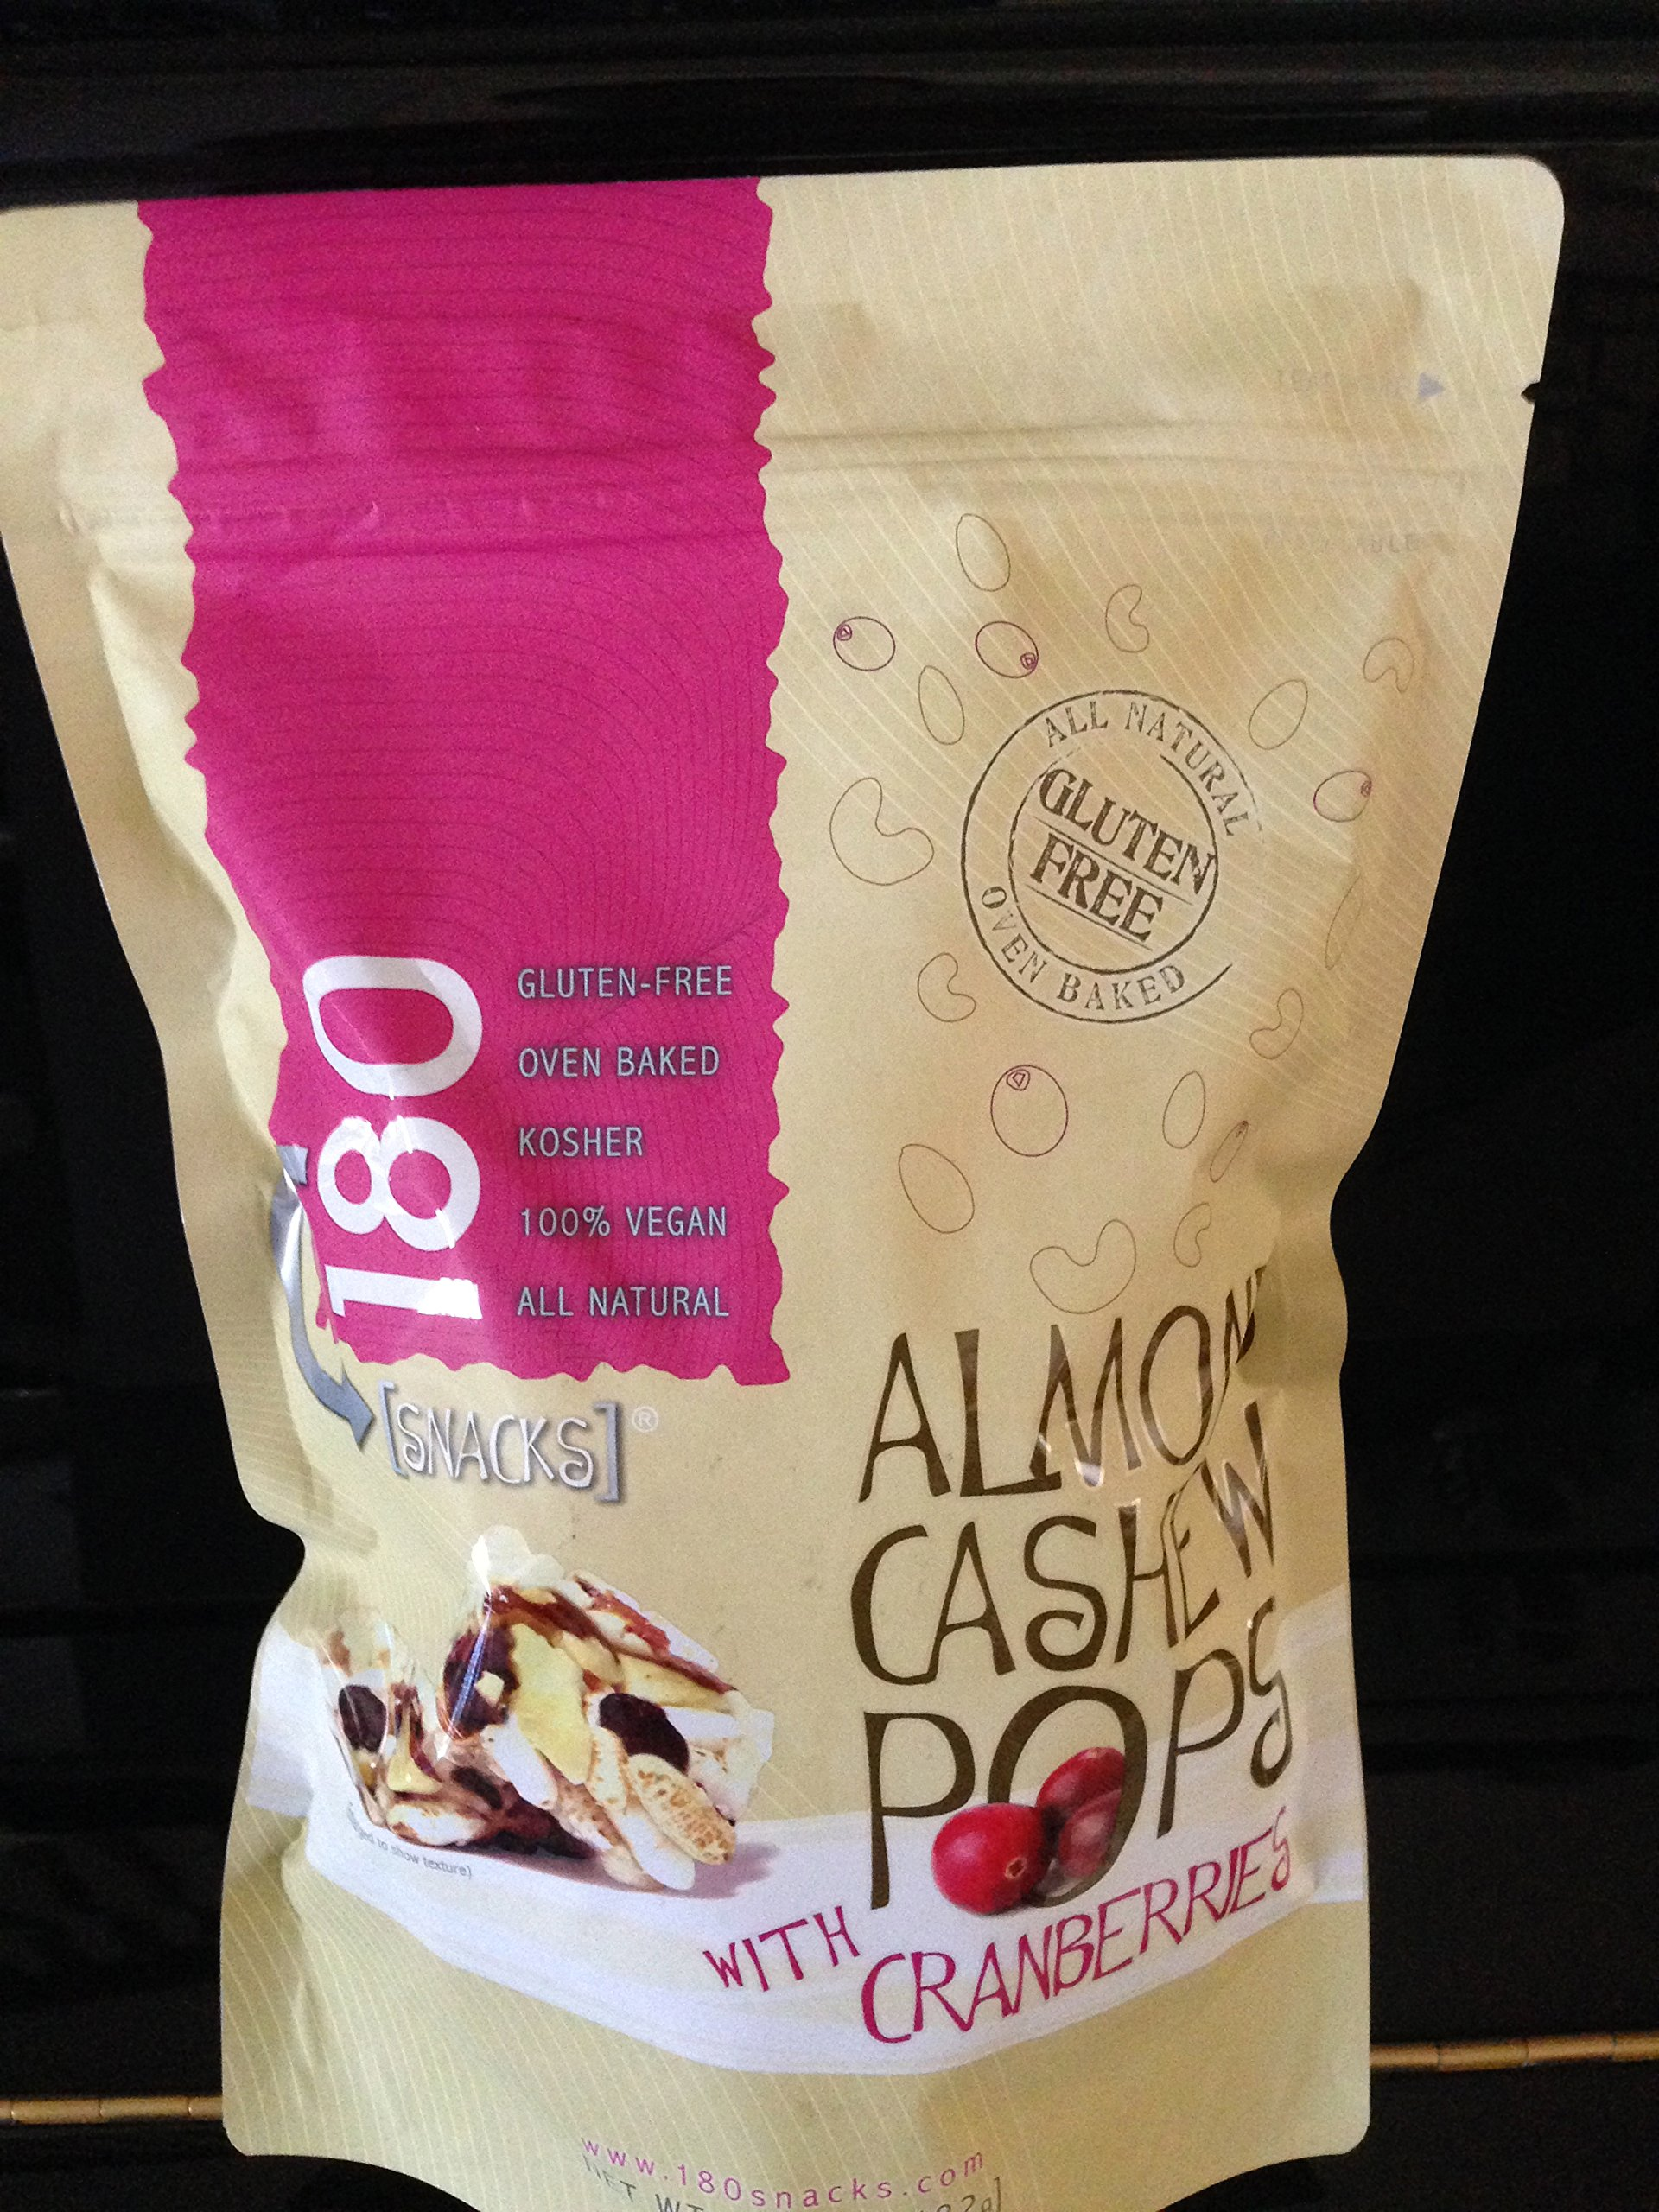 180 Snacks Almond Pops With Cranberries 17 oz Value Bag by 180 Snacks (Image #1)